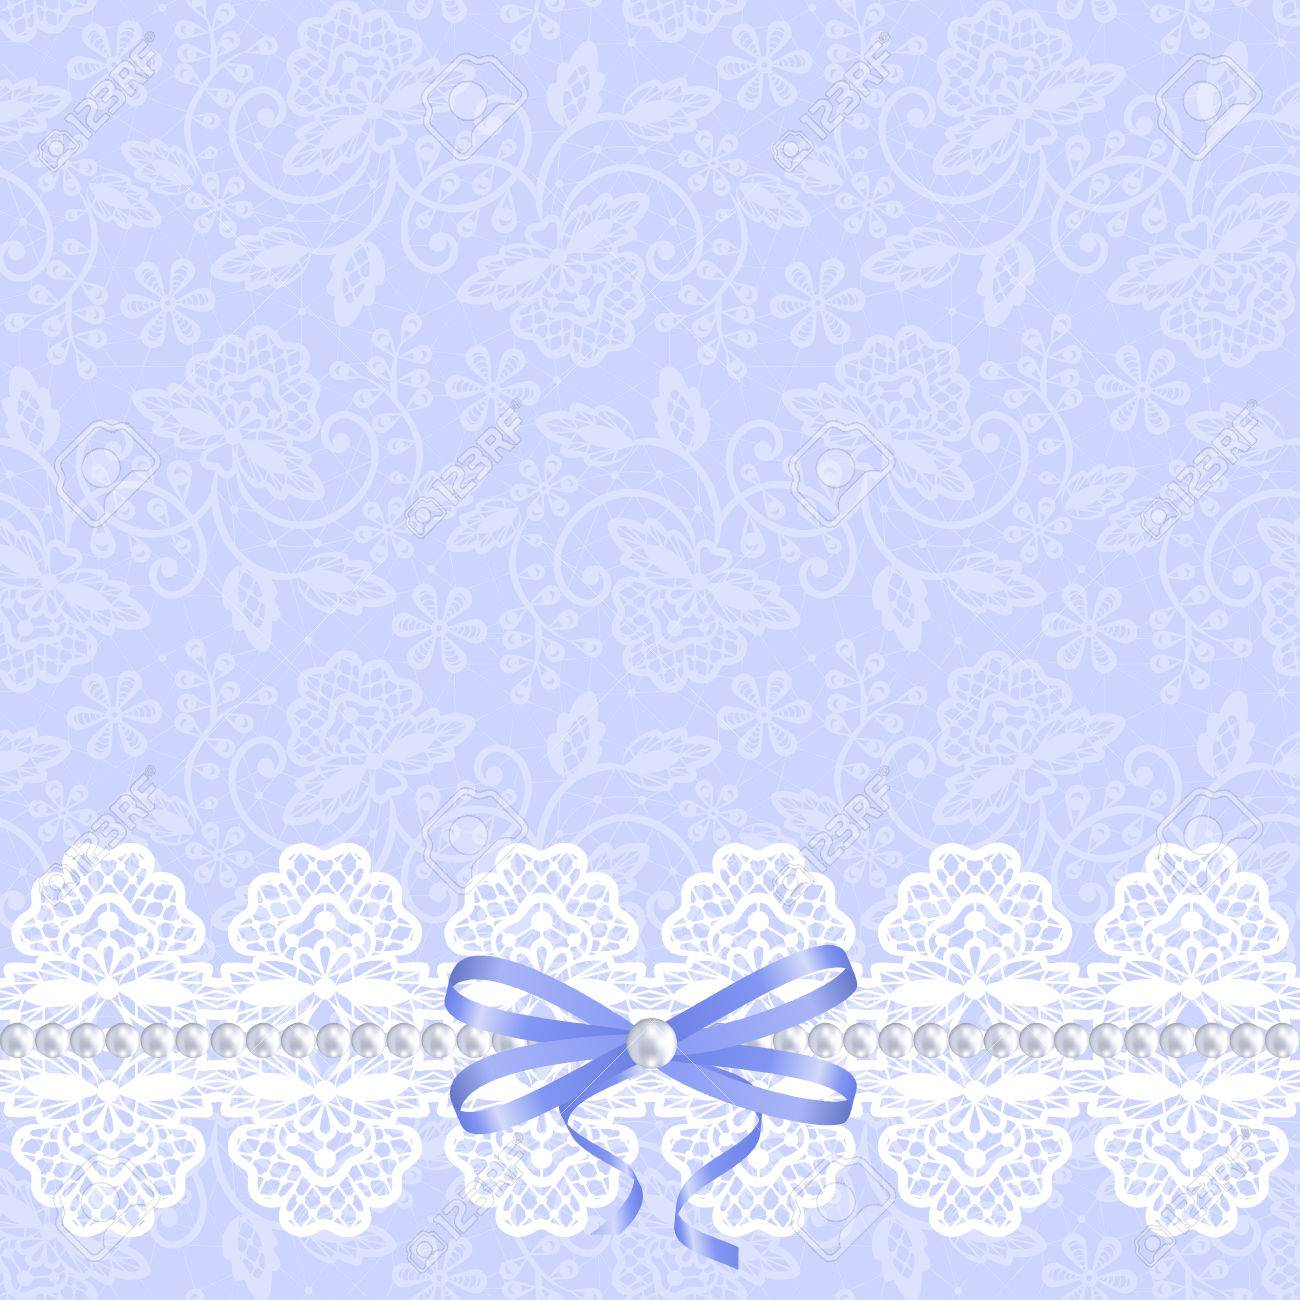 wedding invitation or greeting card with white lace on blue